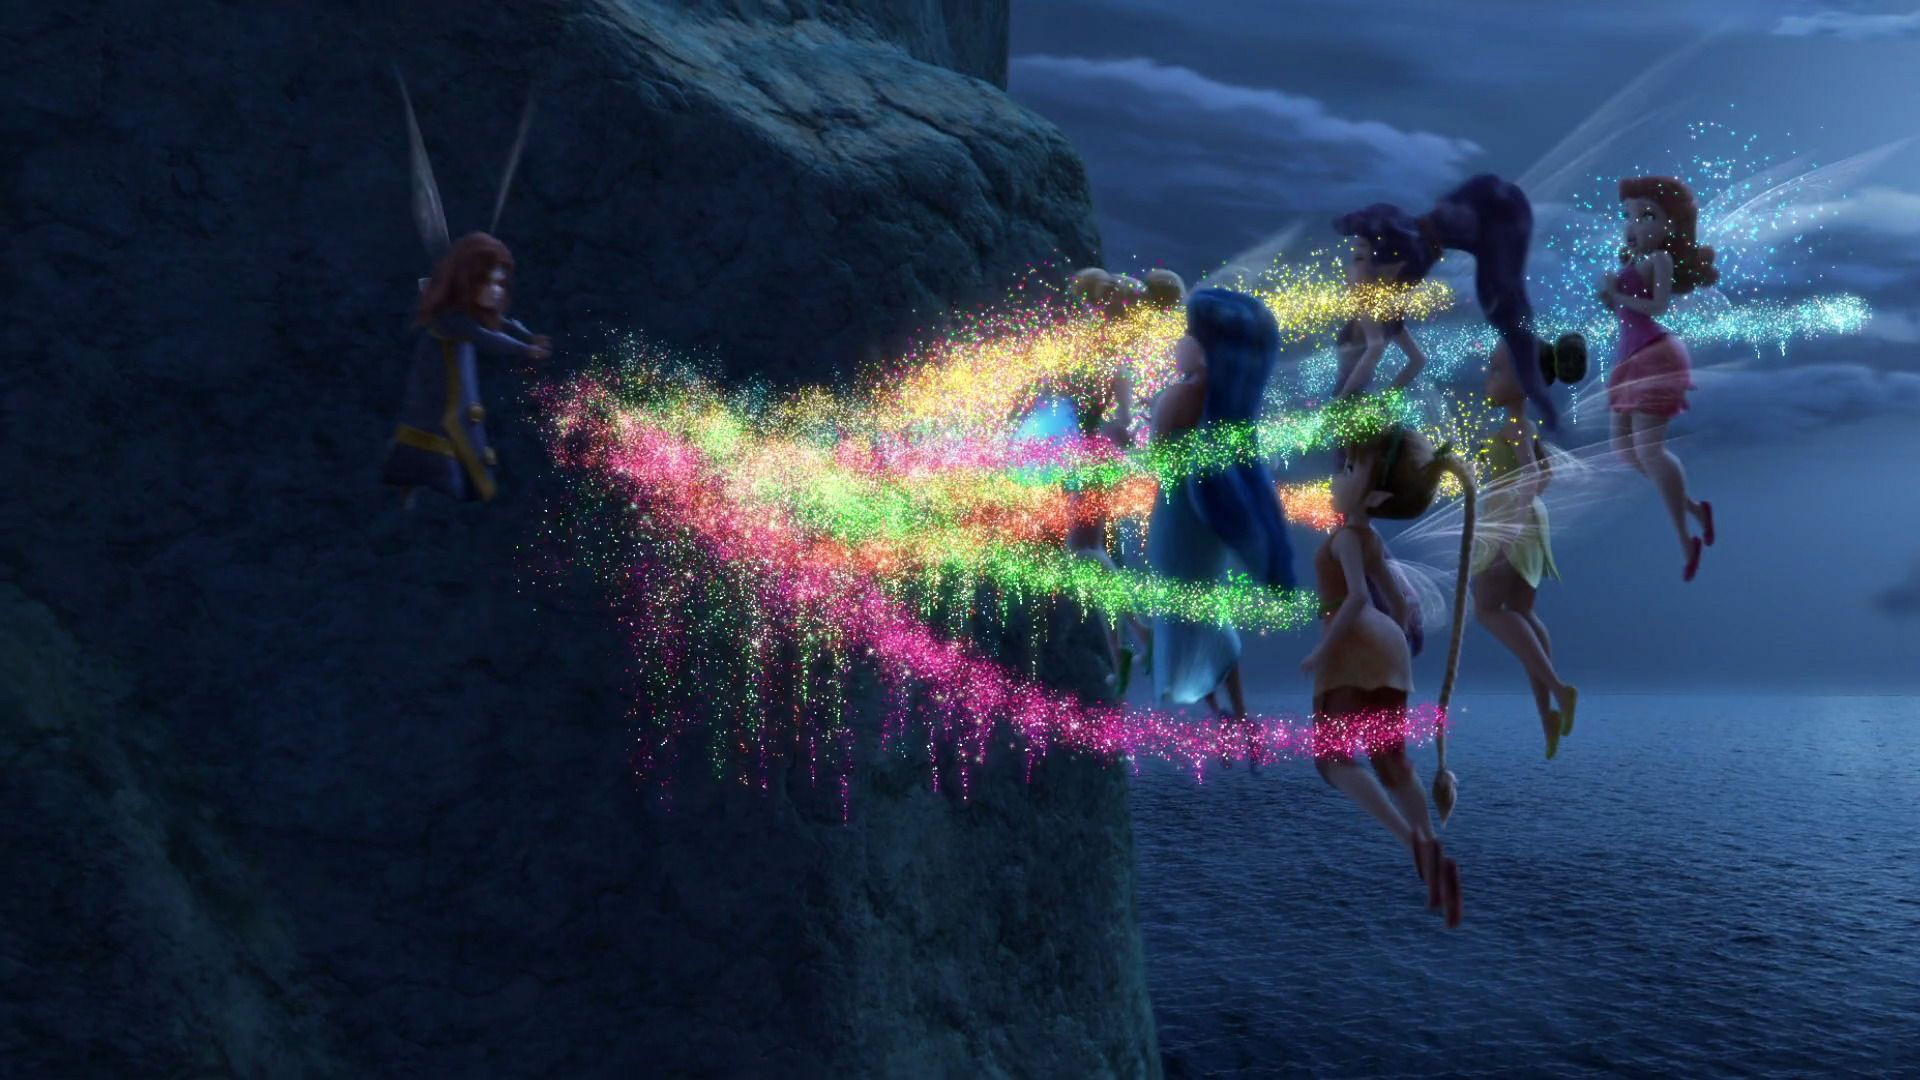 Zarina mixing up the Pixie dust to switch the fairy talent | Fairies